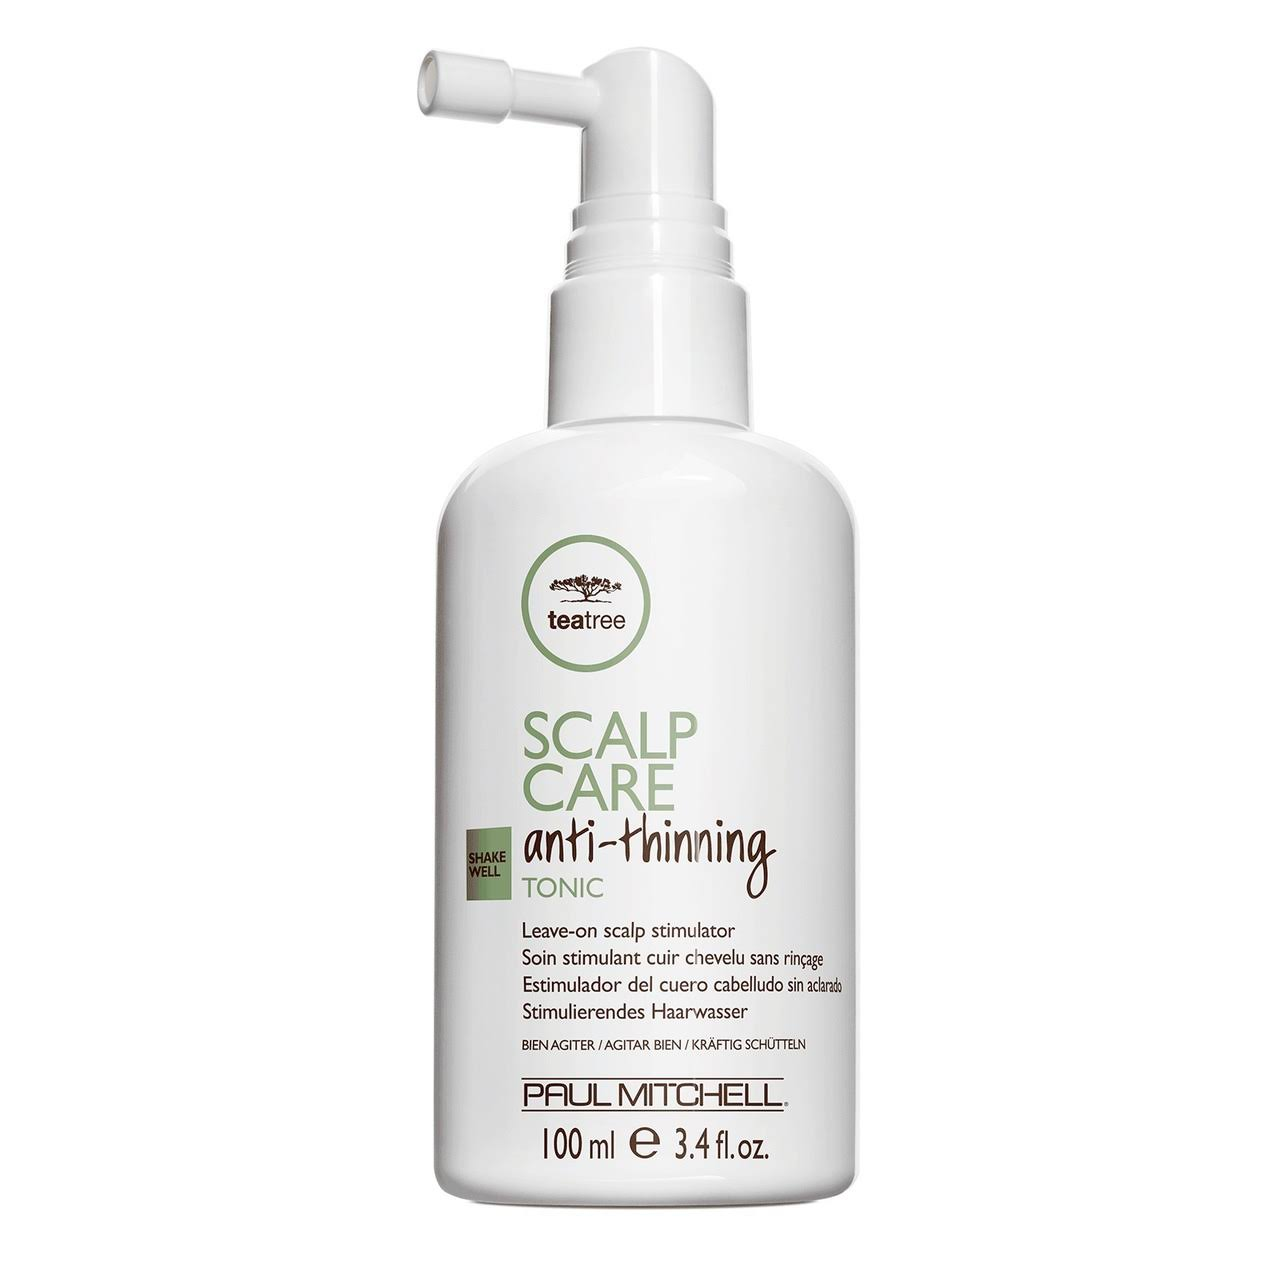 Paul Mitchell Tea Tree Scalp Care Anti-Thinning Tonic - 3.4oz